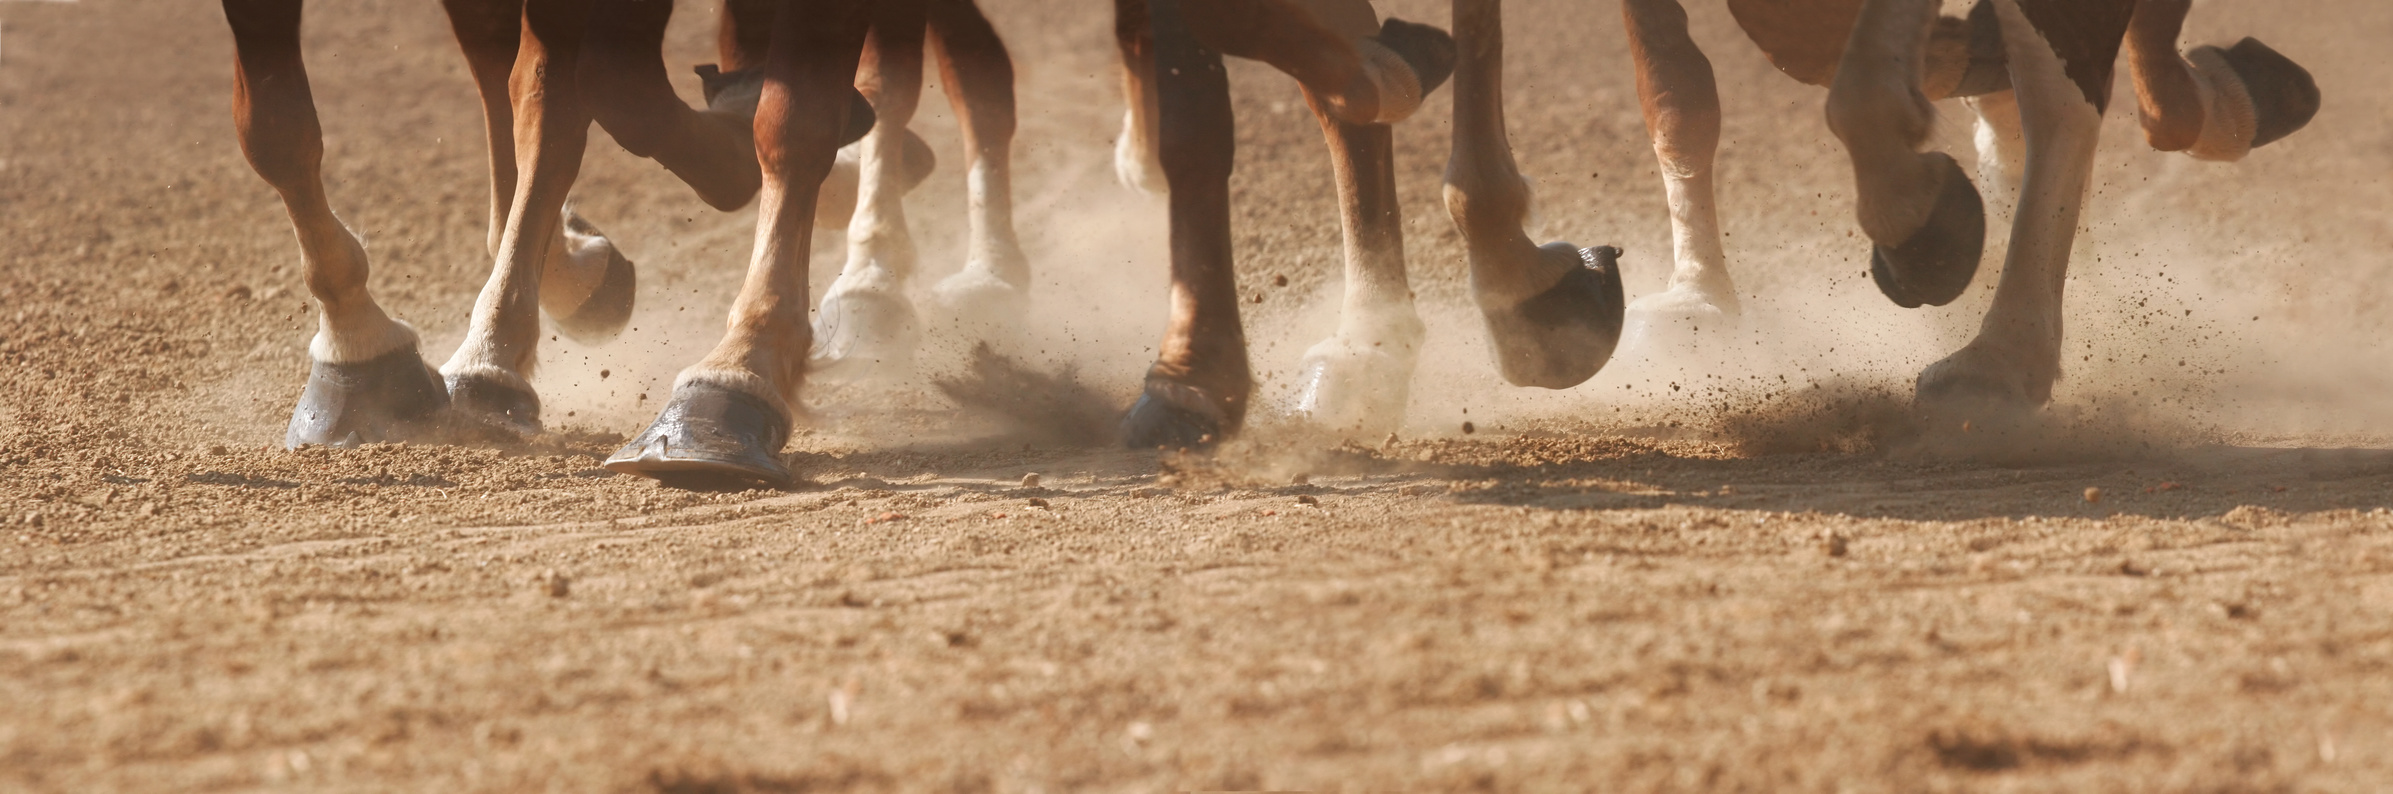 horse hooves in fixed horse race